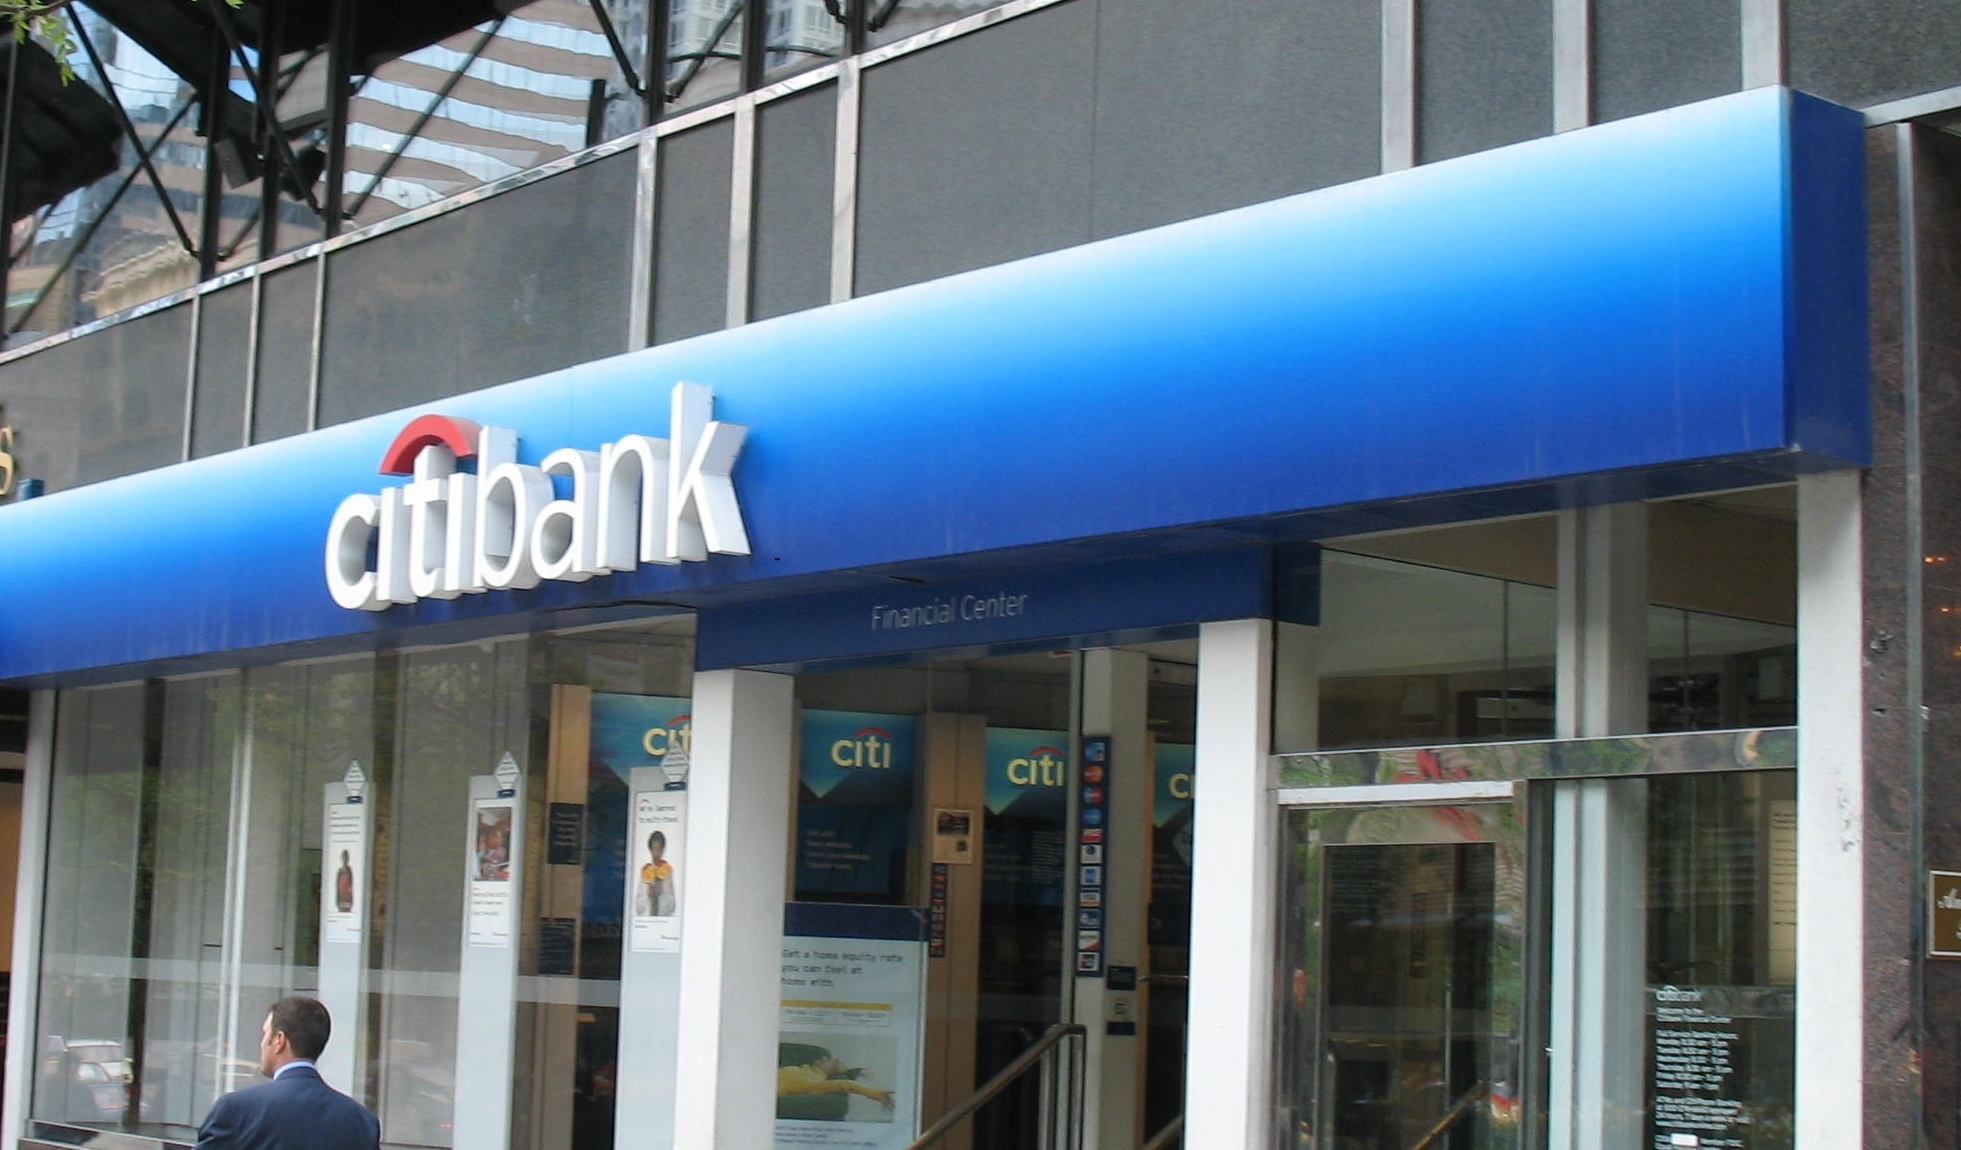 Citibank will be no longer in Panama